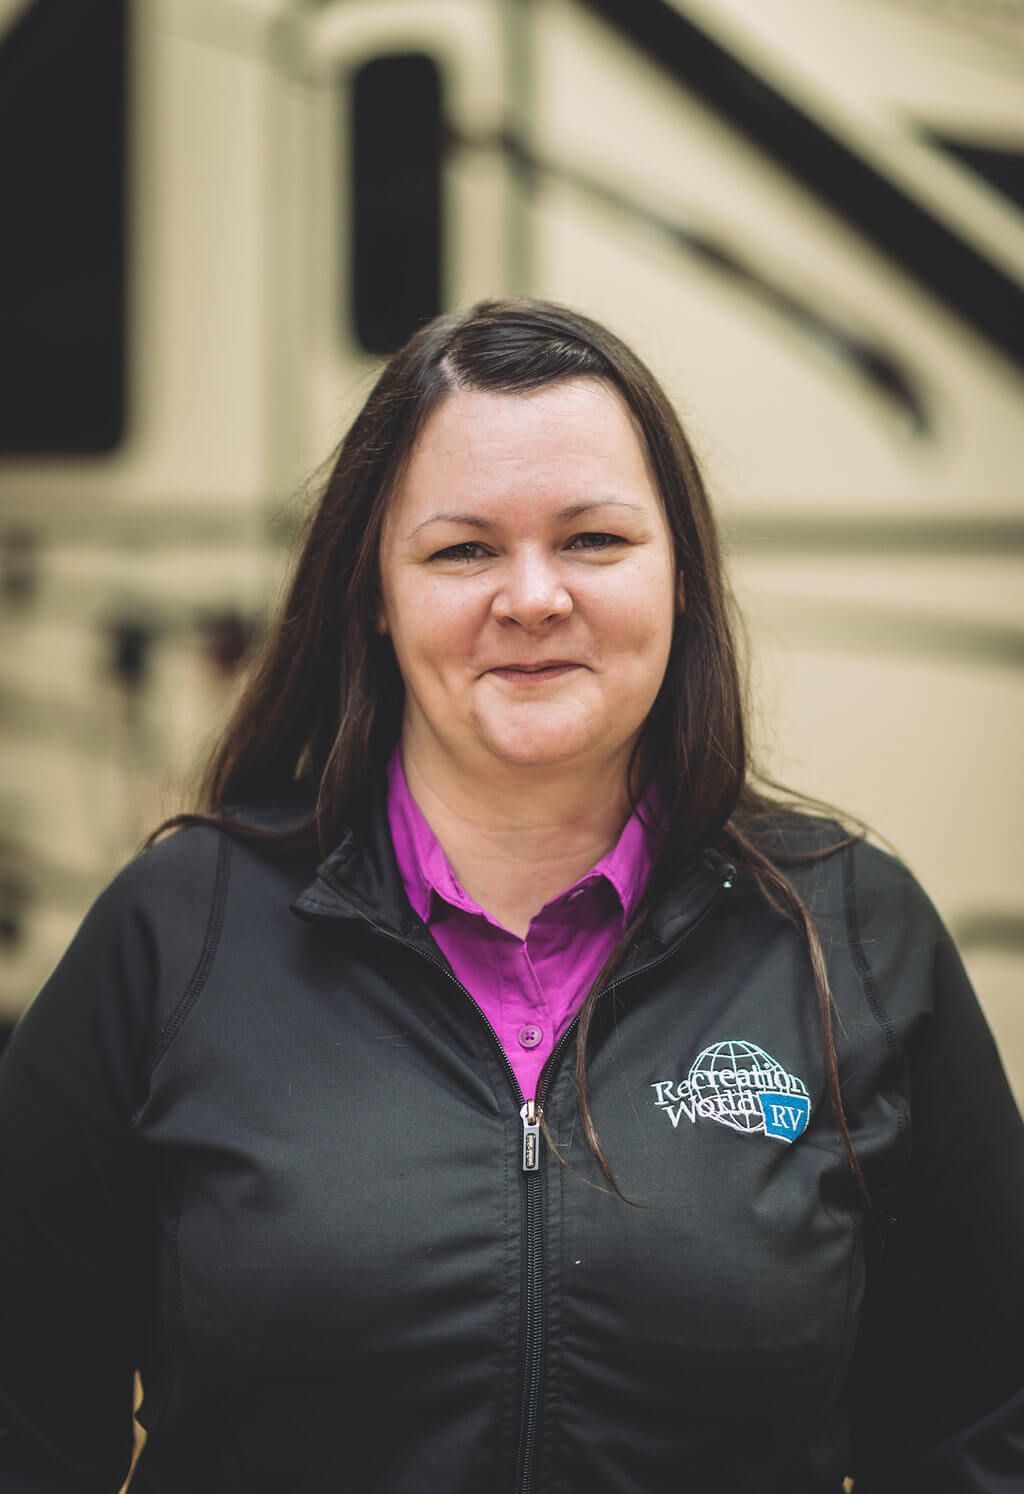 Pam from Sales at Rec World RV